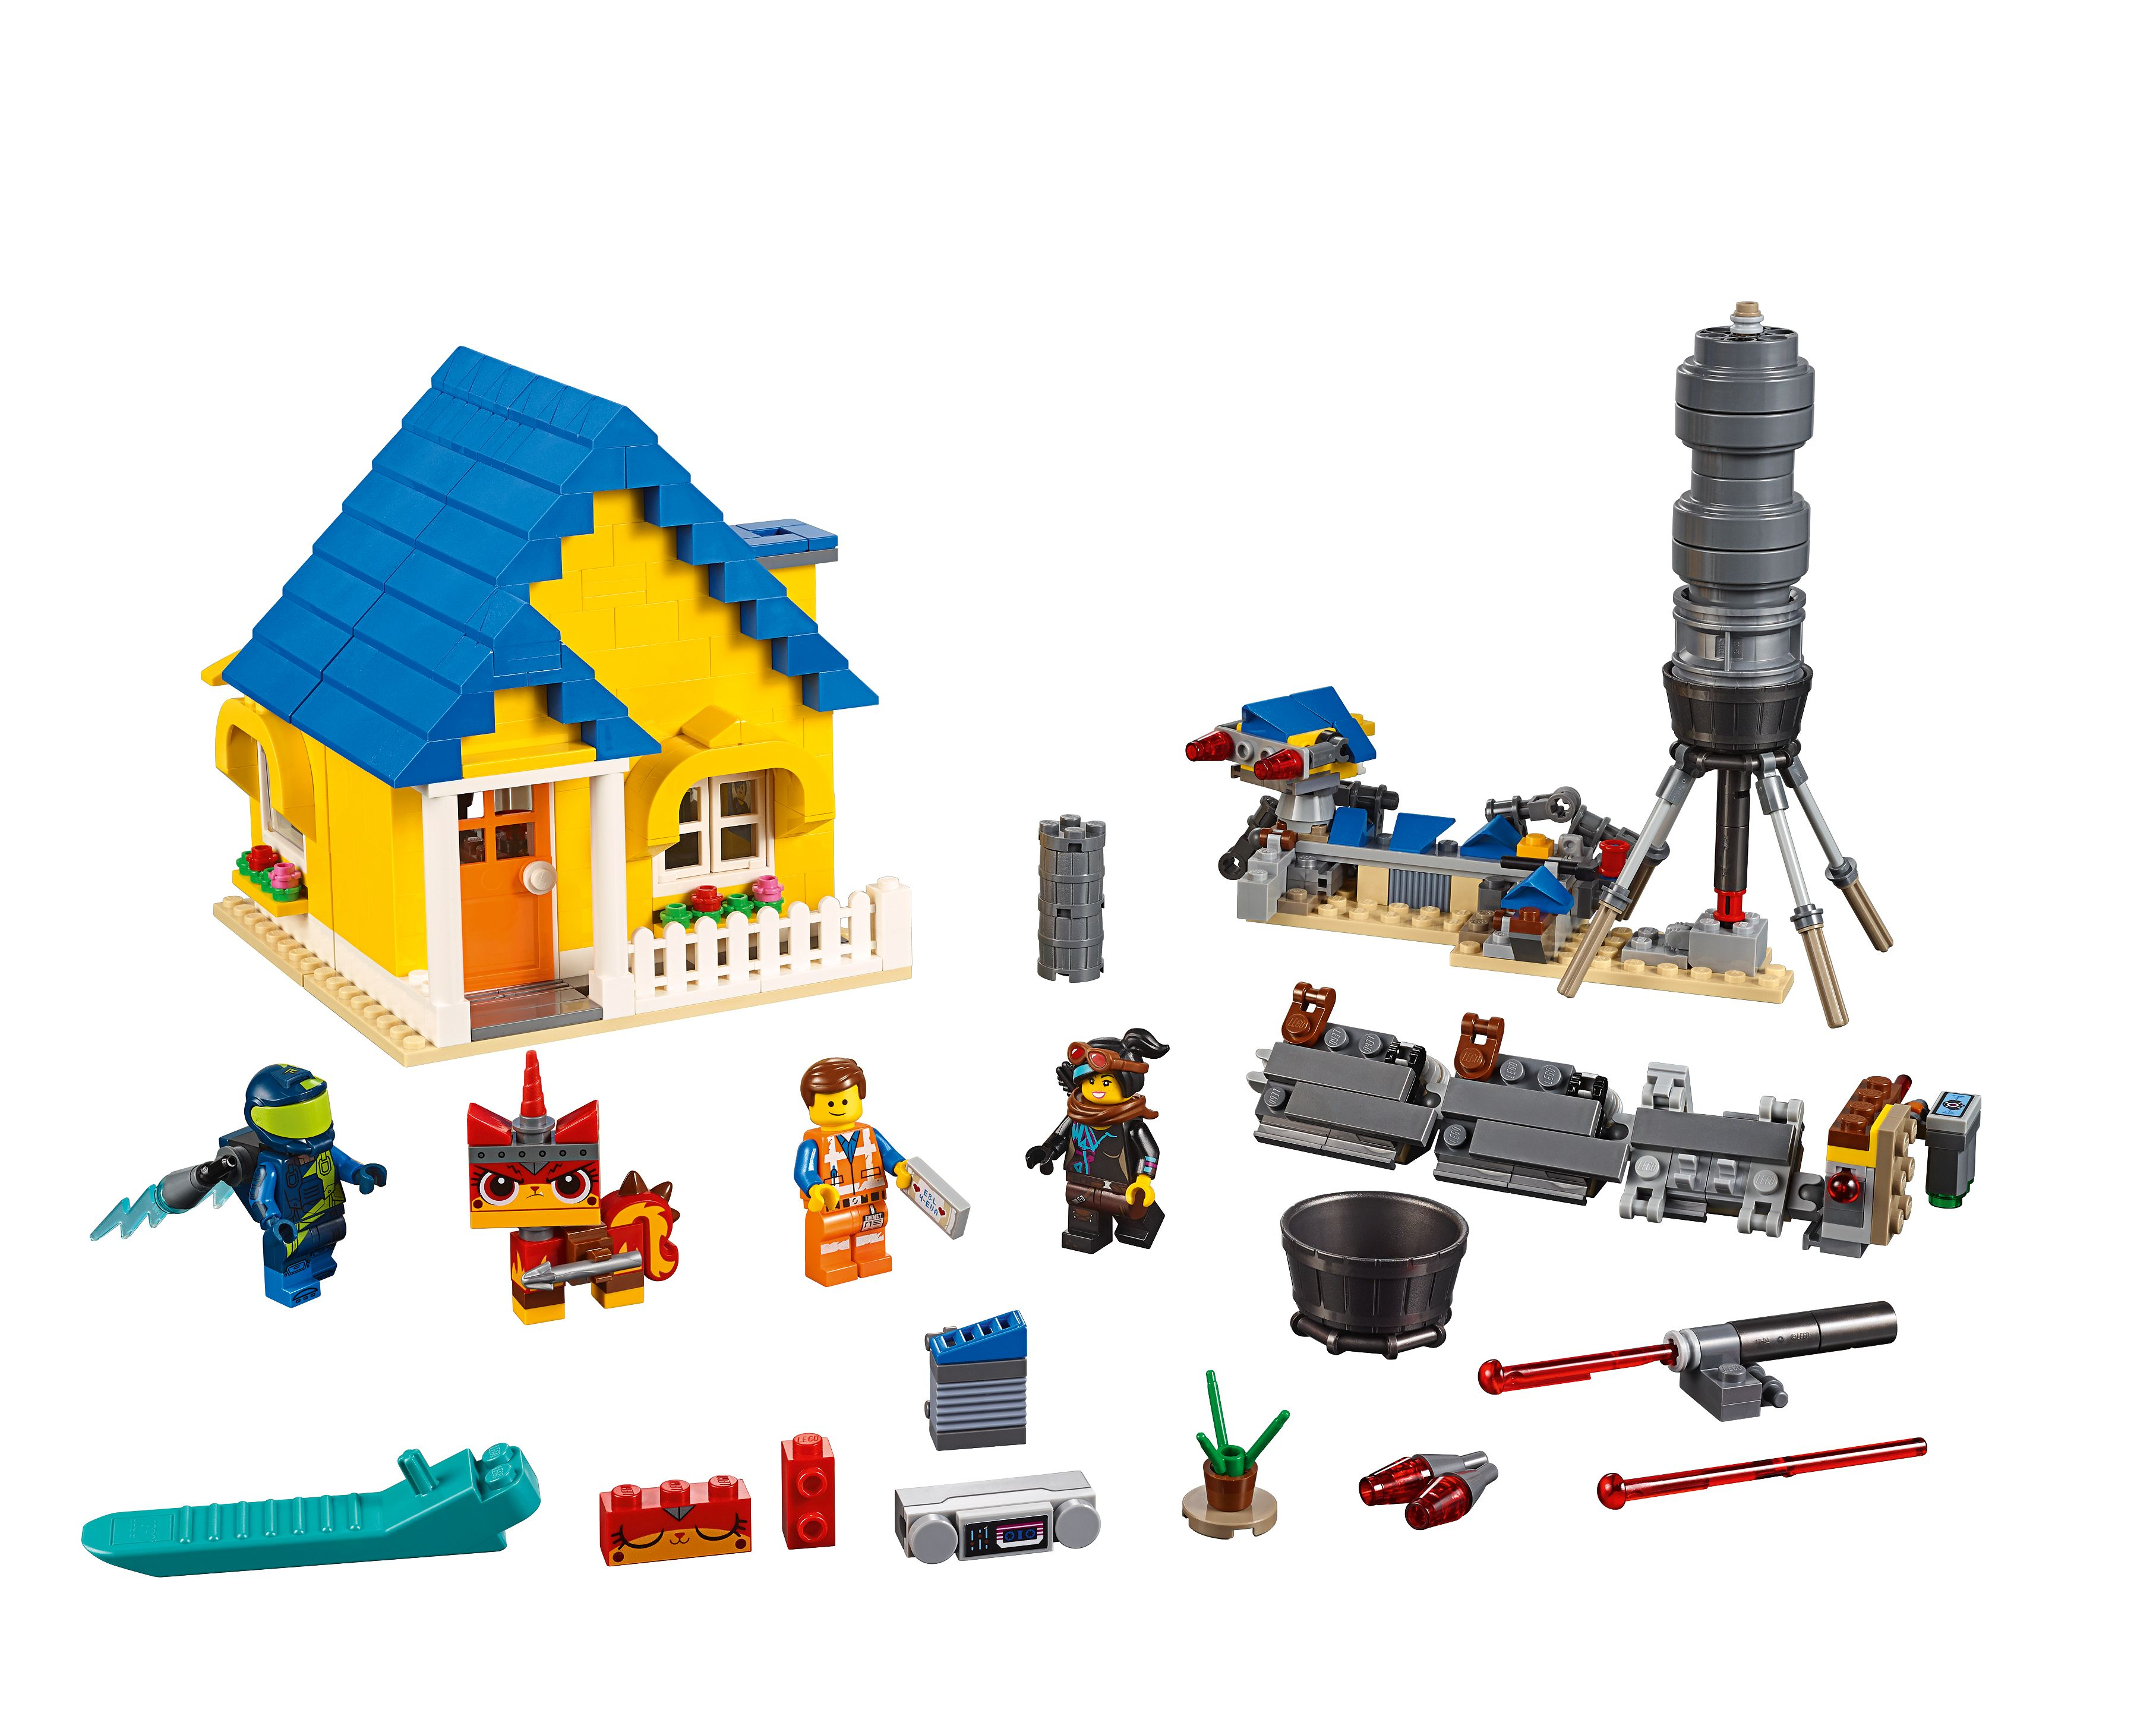 Emmet's Dream House/Rescue Rocket! 70831 | THE LEGO® MOVIE 2™ | on